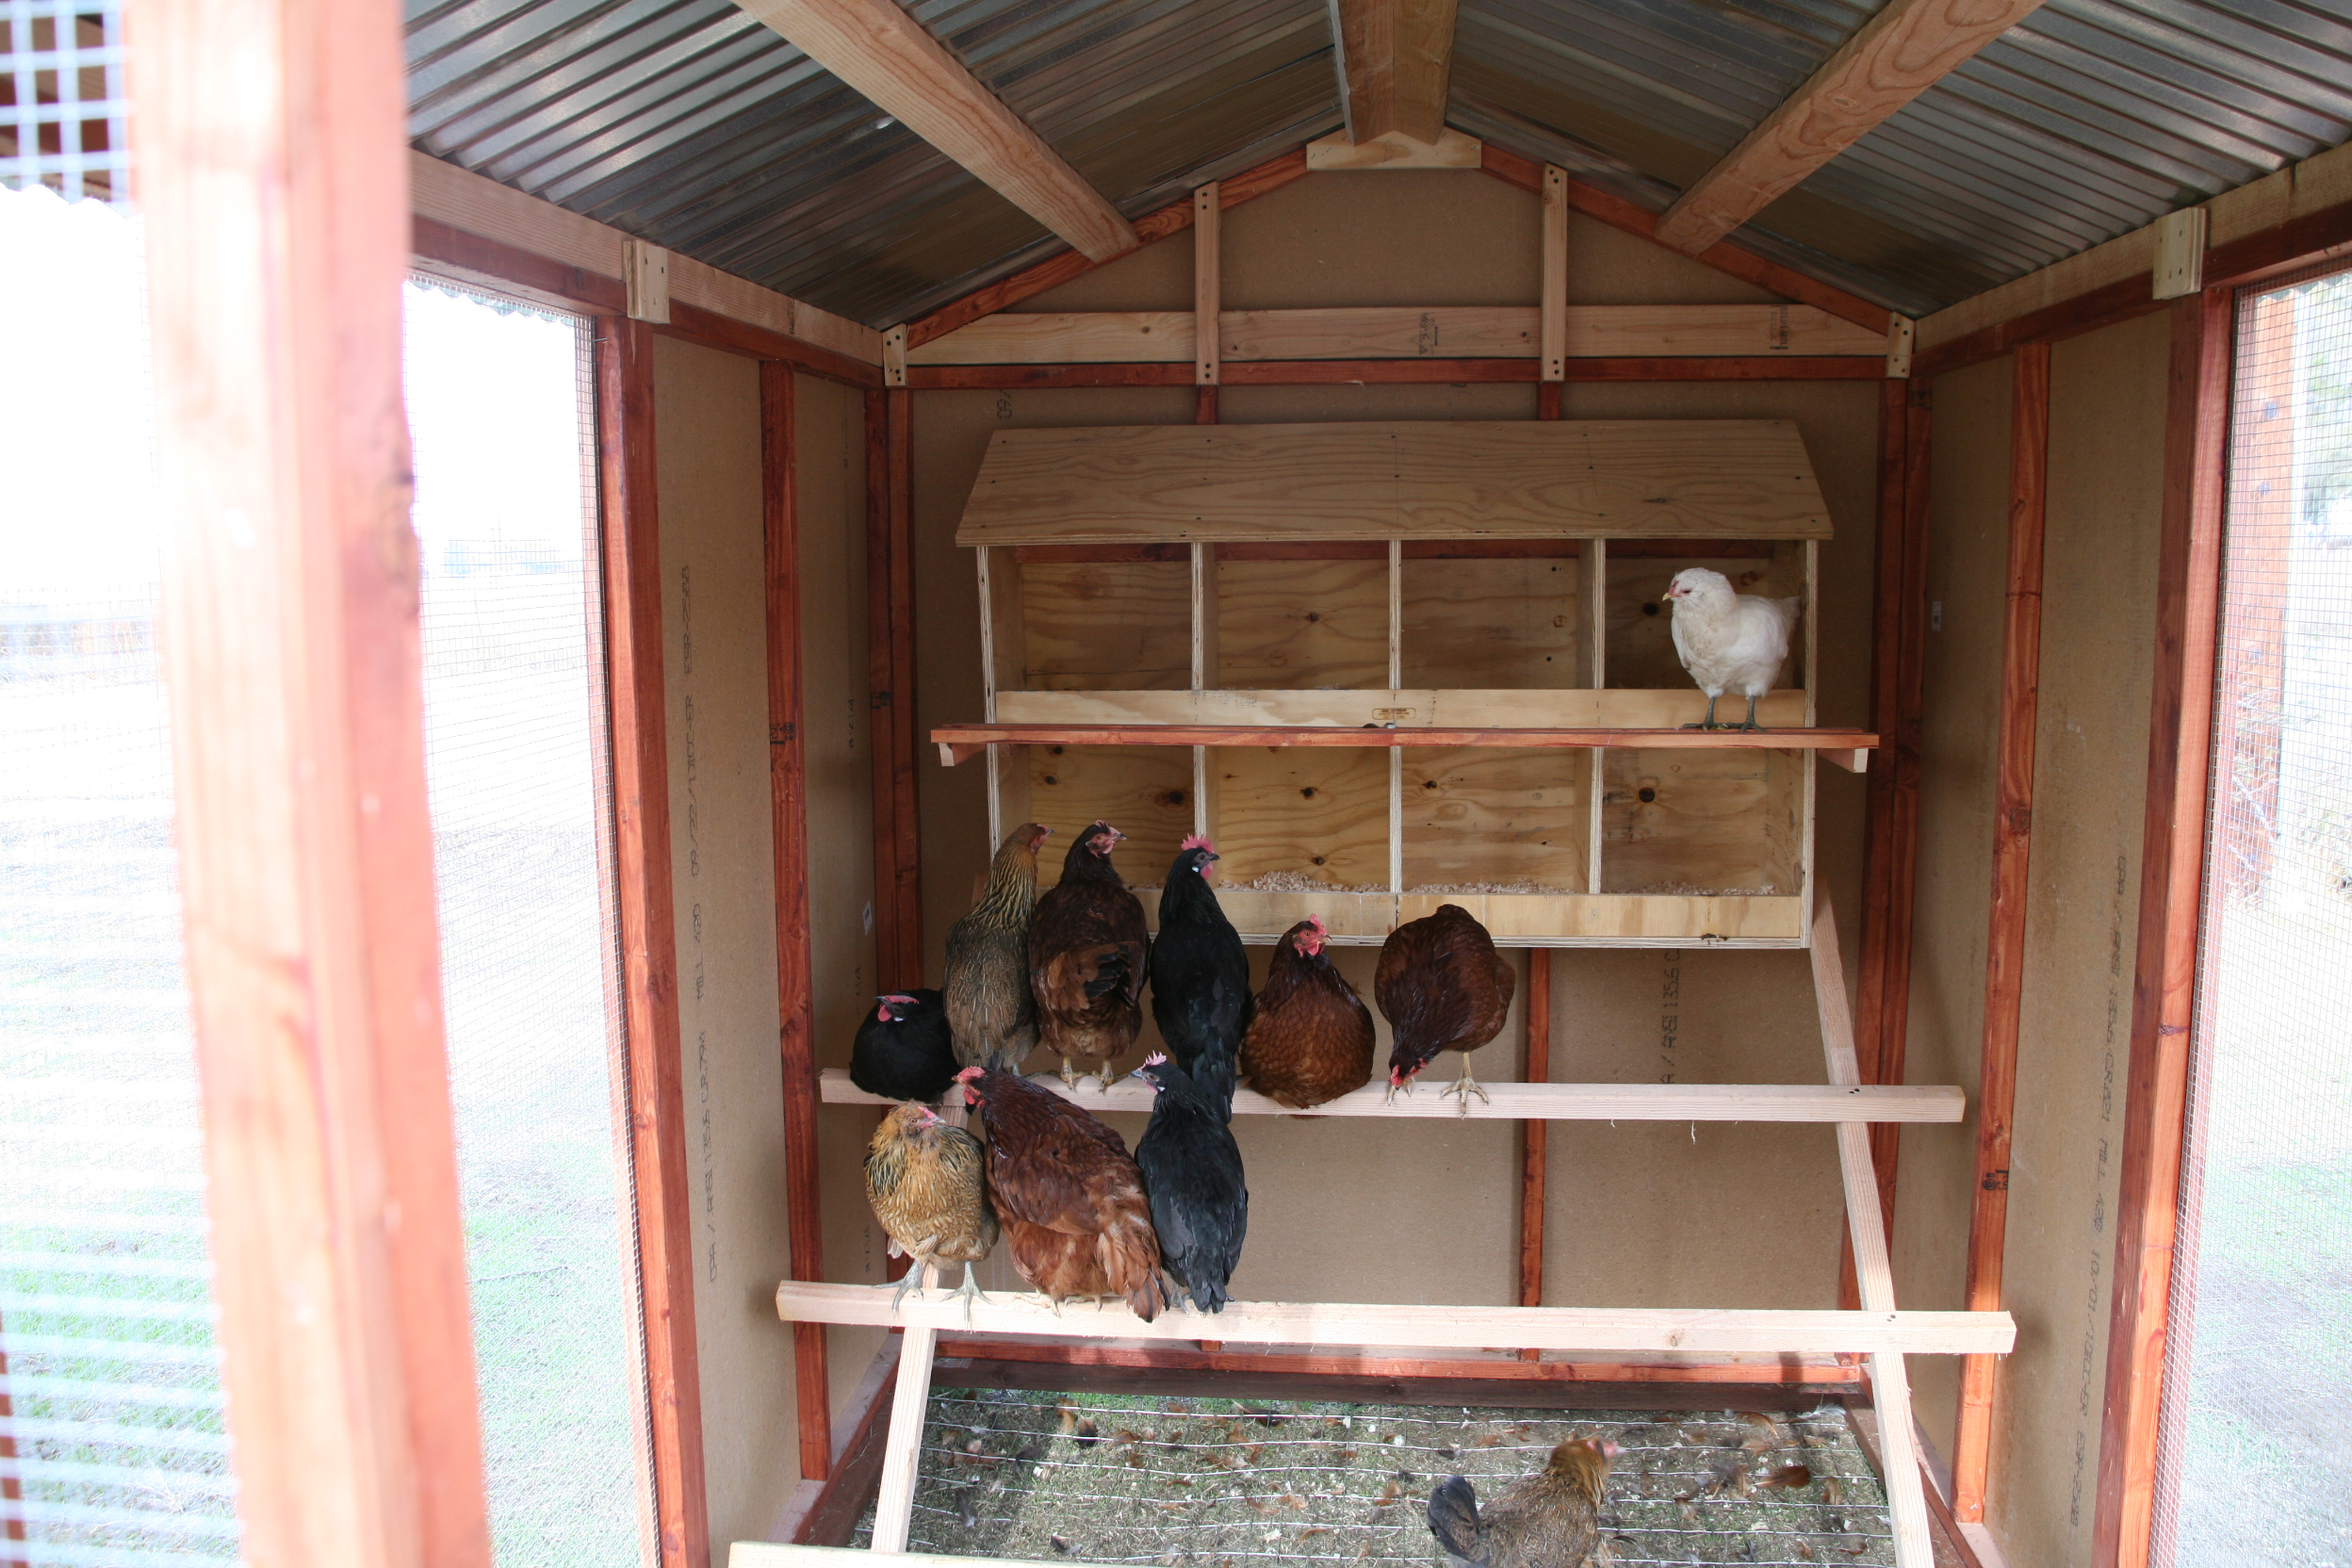 denny yam chicken coop ideas pictures details